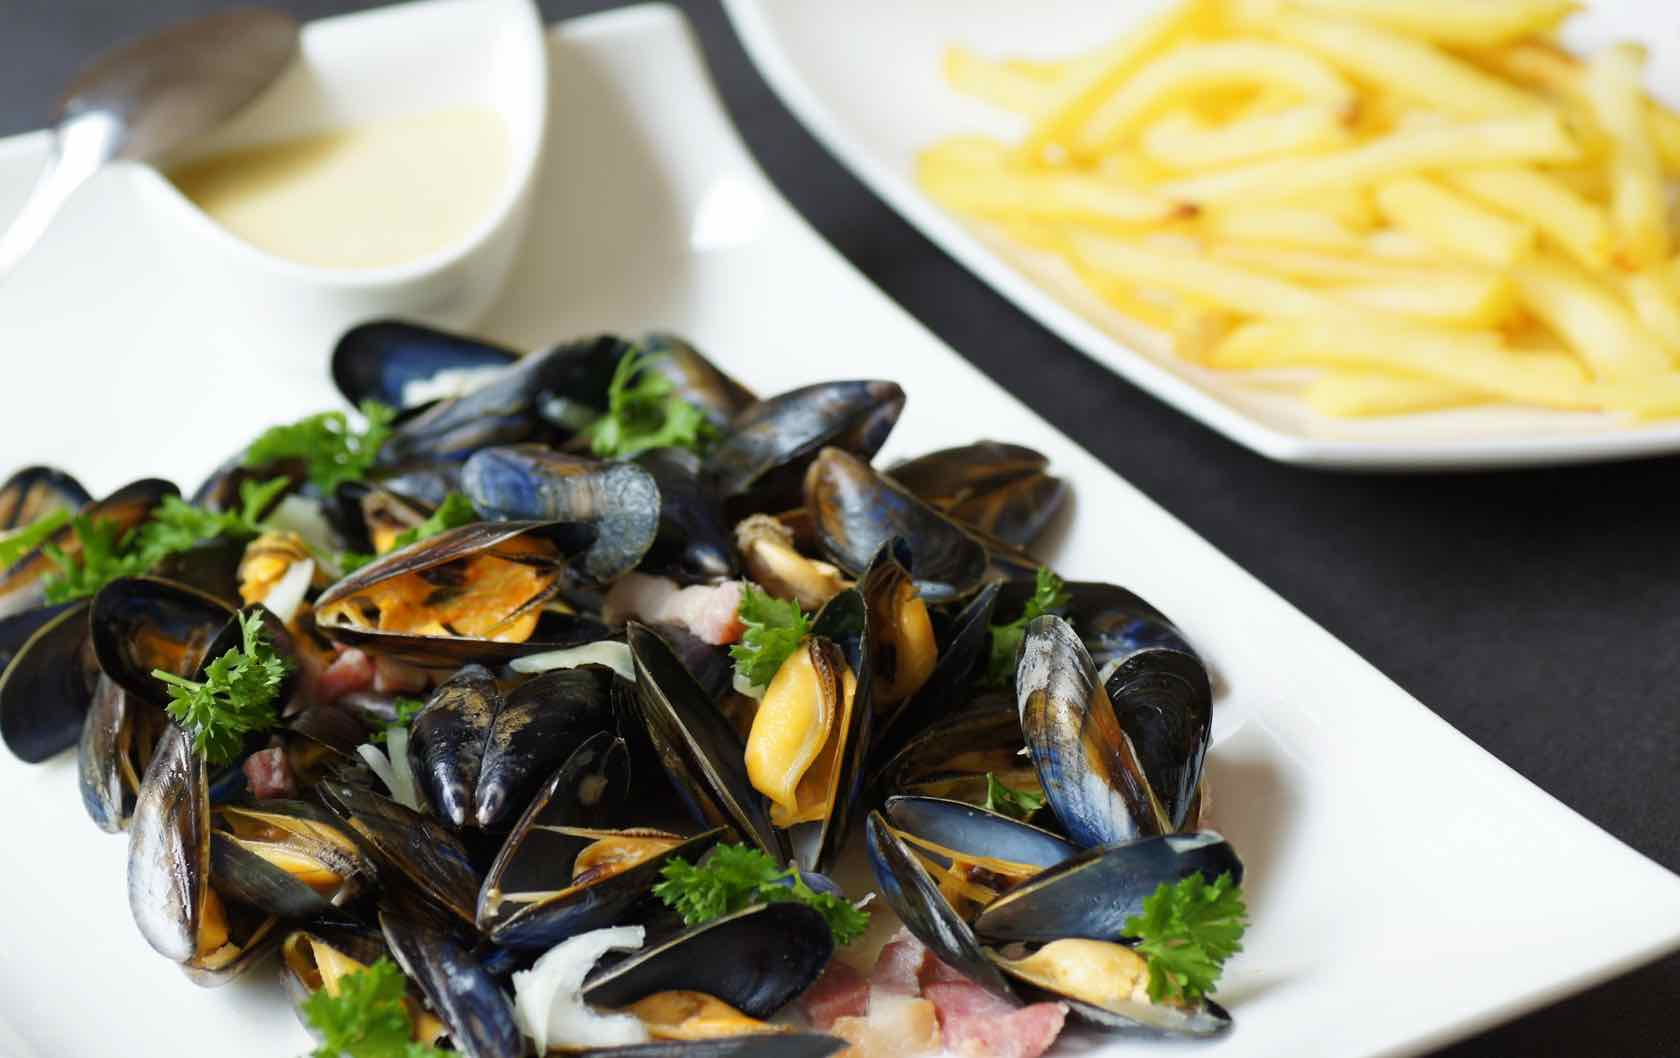 Classic Savory French Dishes Moules Marinières